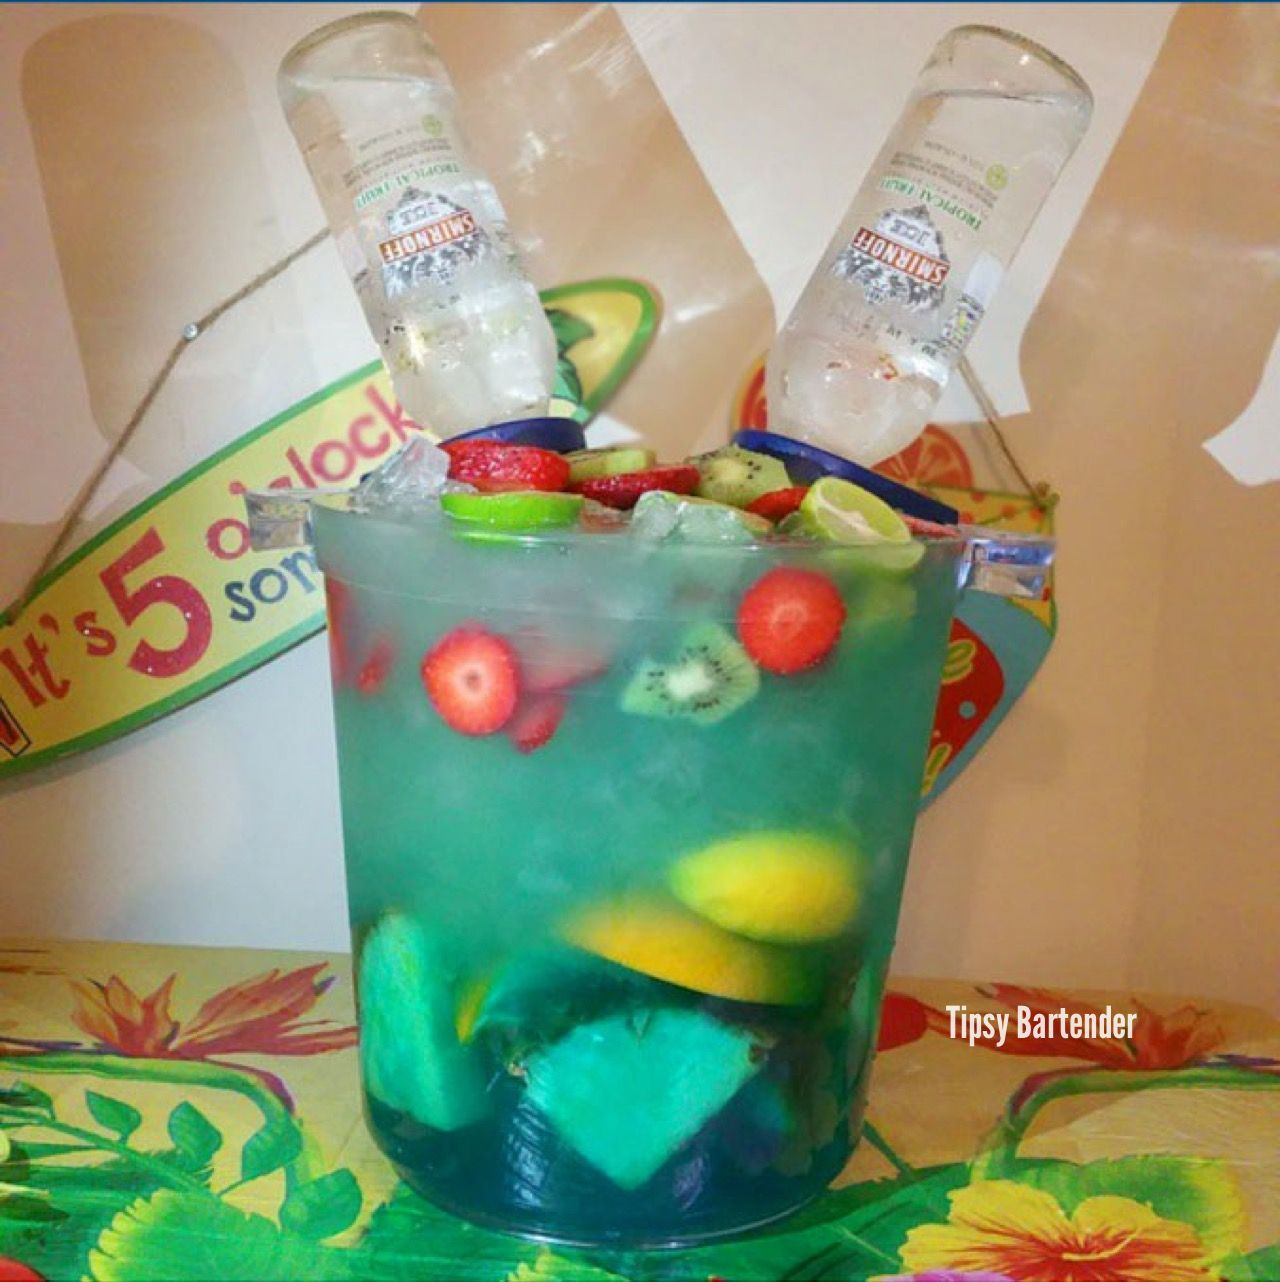 8 Tropical Island Rum Cocktails: It's 5'oClock Somewhere